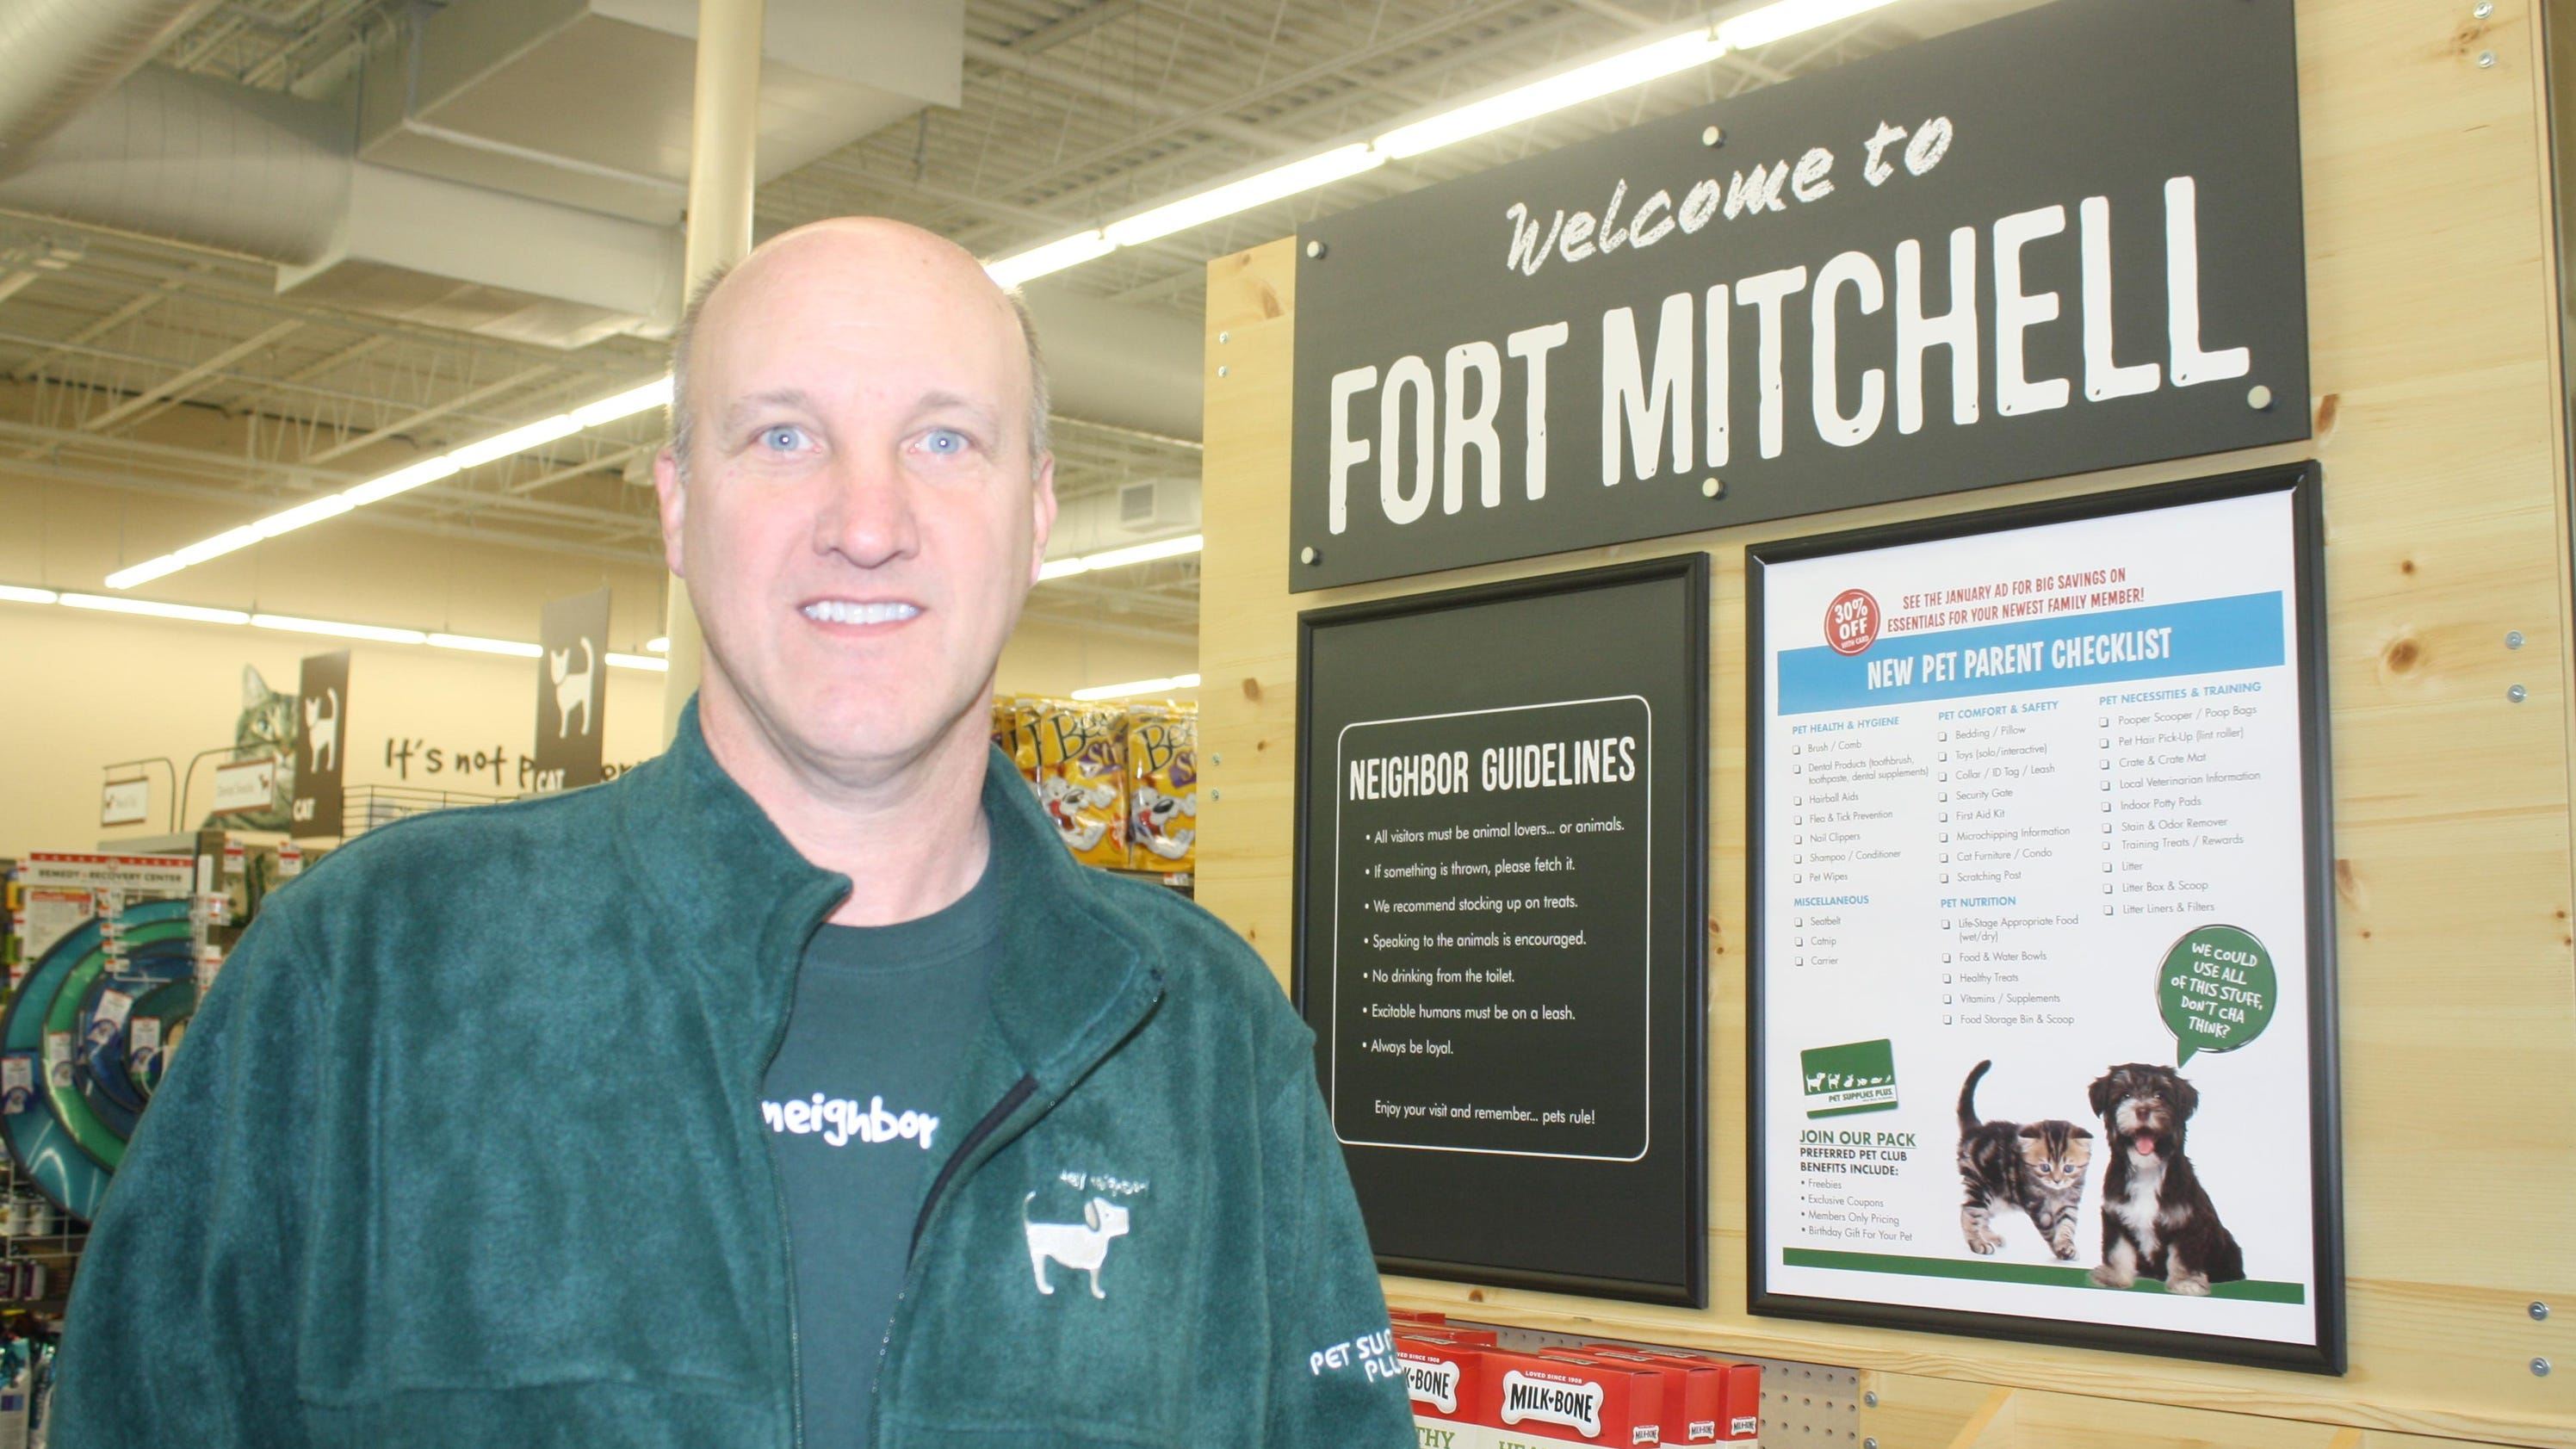 fort mitchell chat Find houses for sale in your area - fort mitchell, al contact a local agent on homefinder.